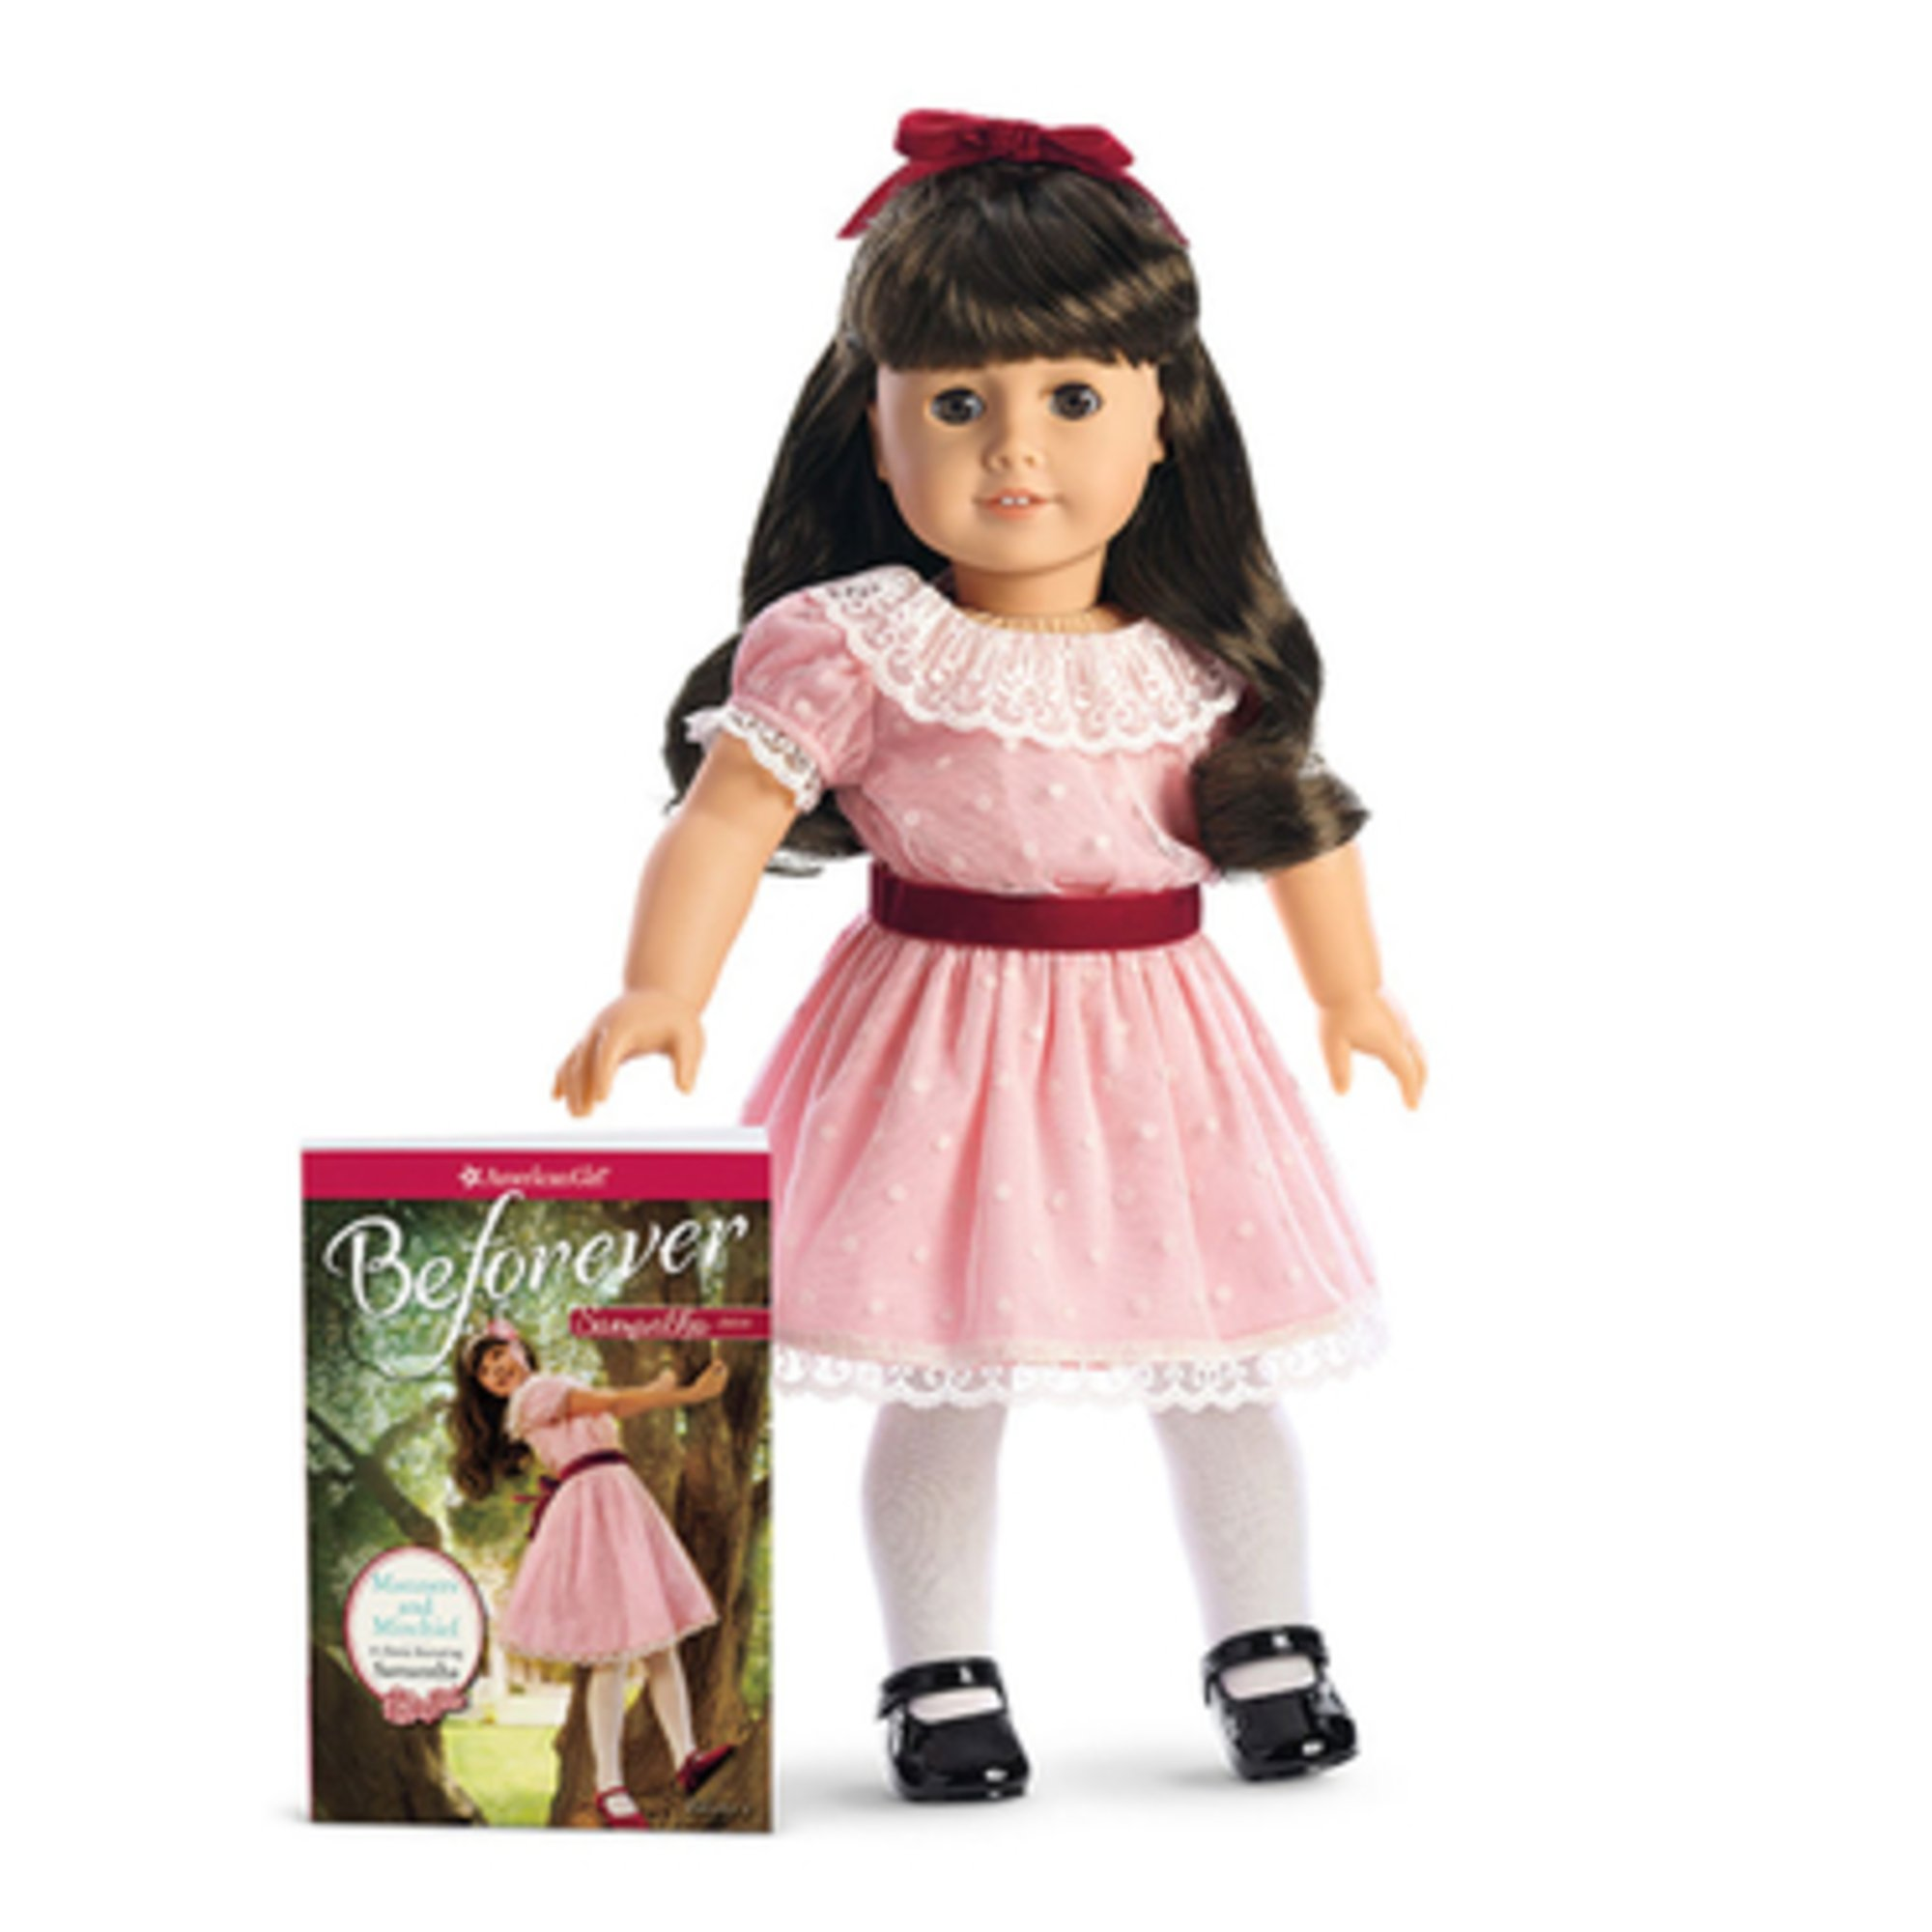 american girl american girl samantha doll and book based on 0 reviews ...